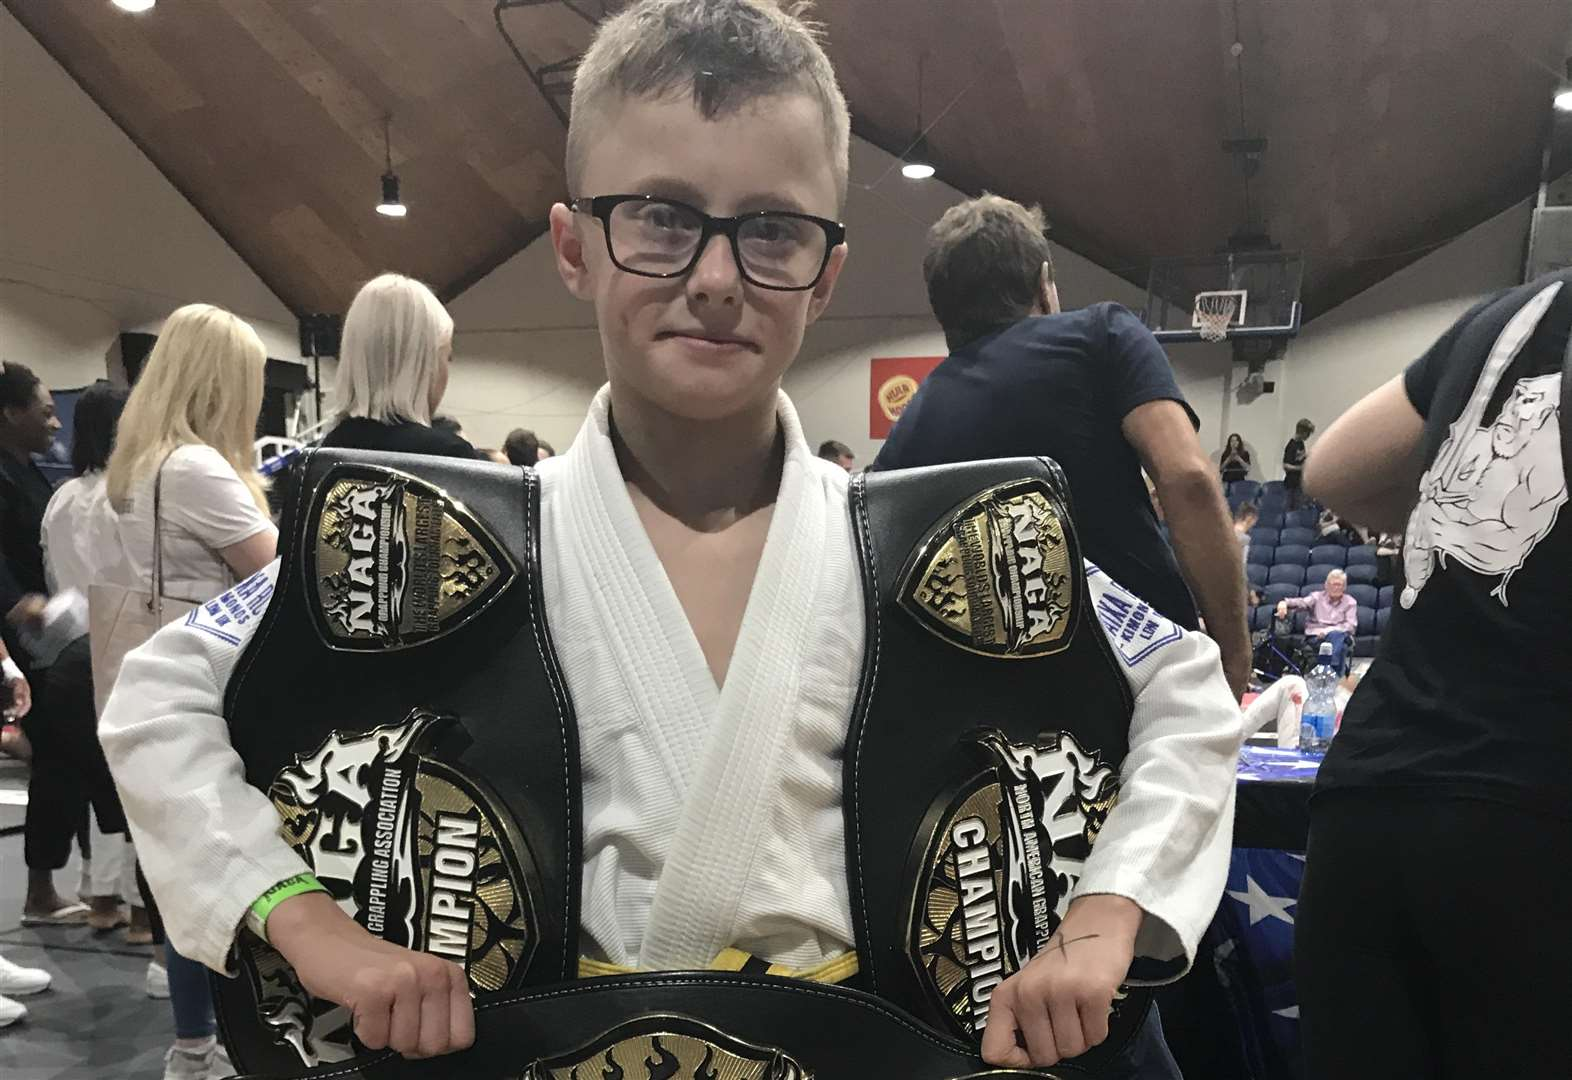 Joe wins three titles at Irish championships